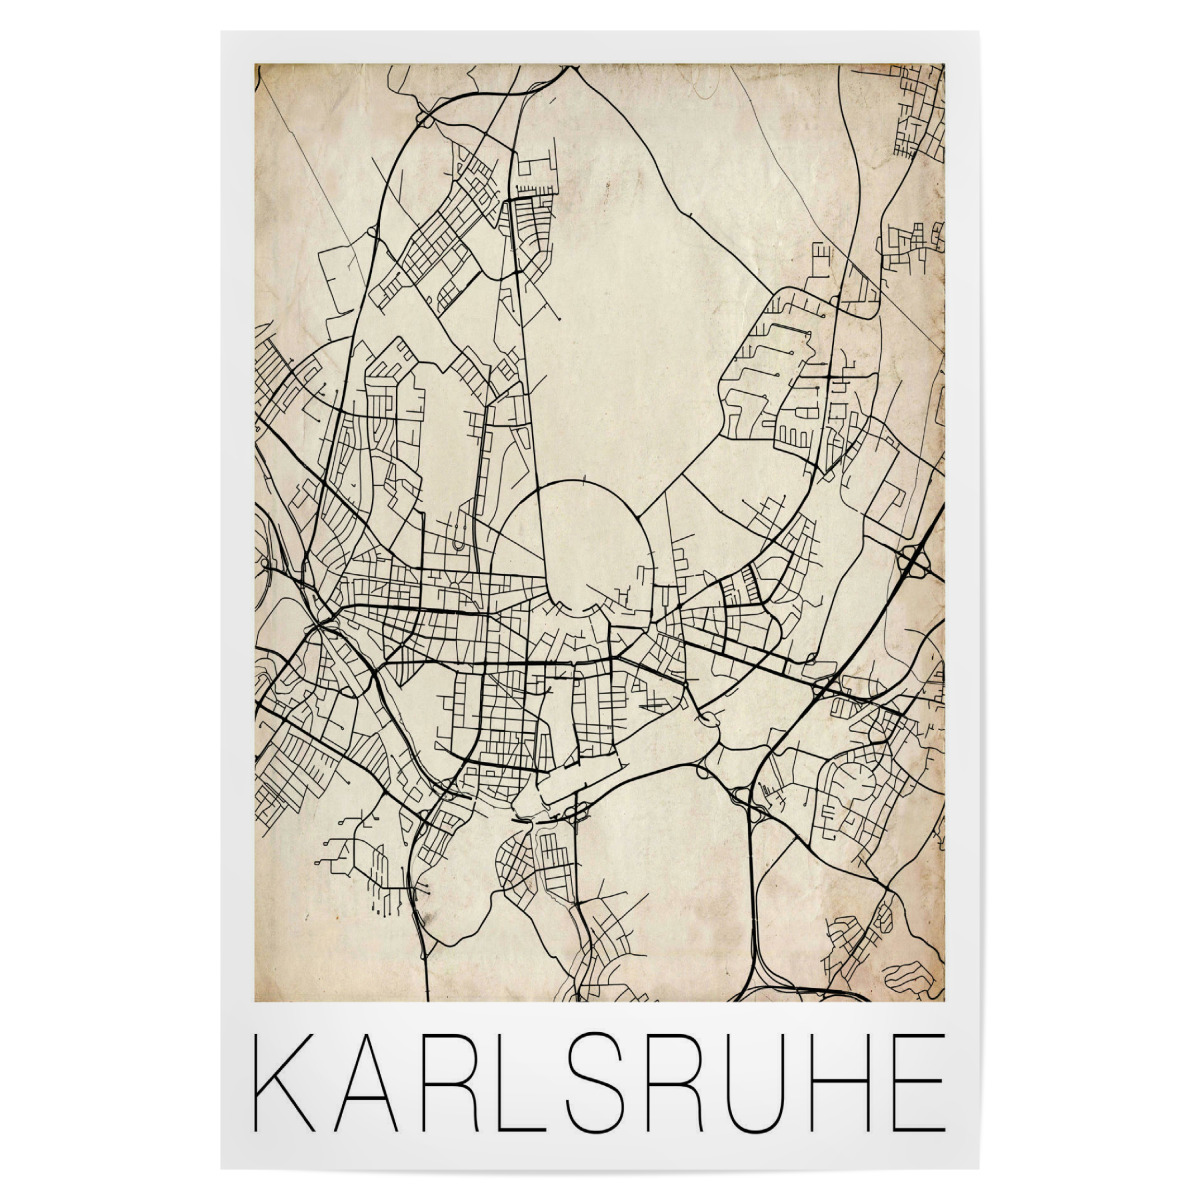 Karlsruhe Map Of Germany.Purchase The Retro Map Of Karlsruhe Germany As A Poster At Artboxone